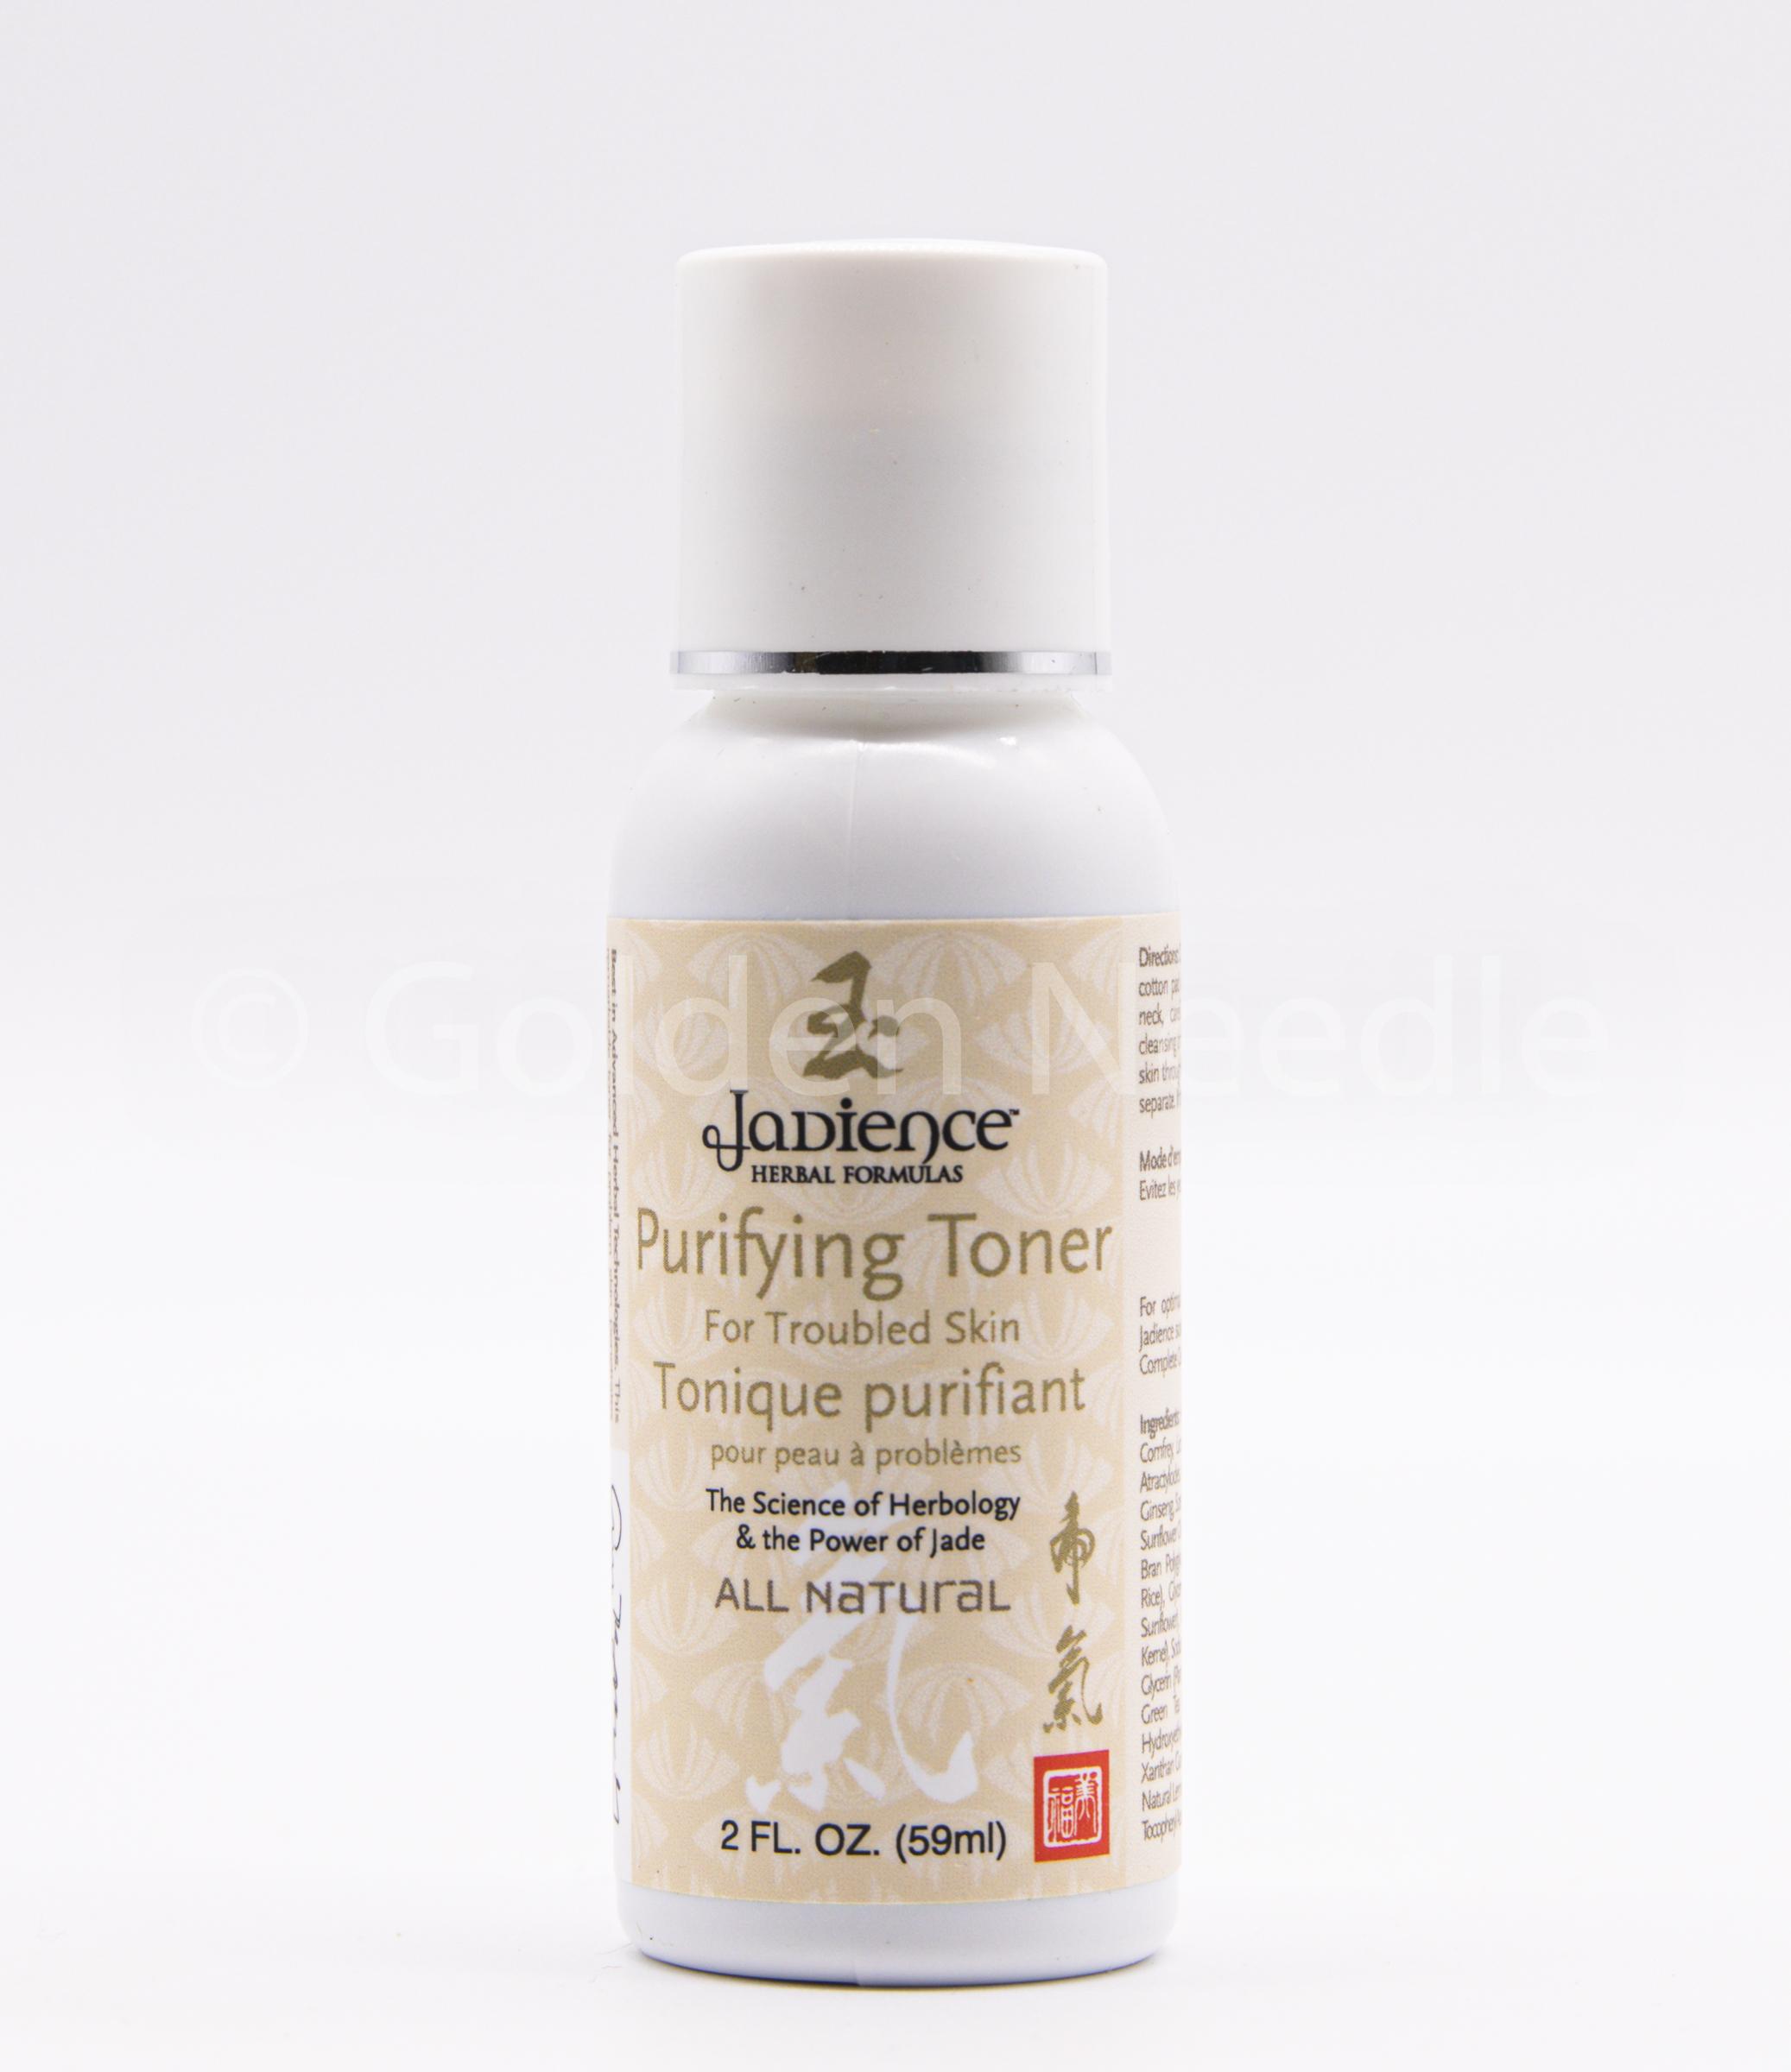 Purifying Toner for Troubled Skin